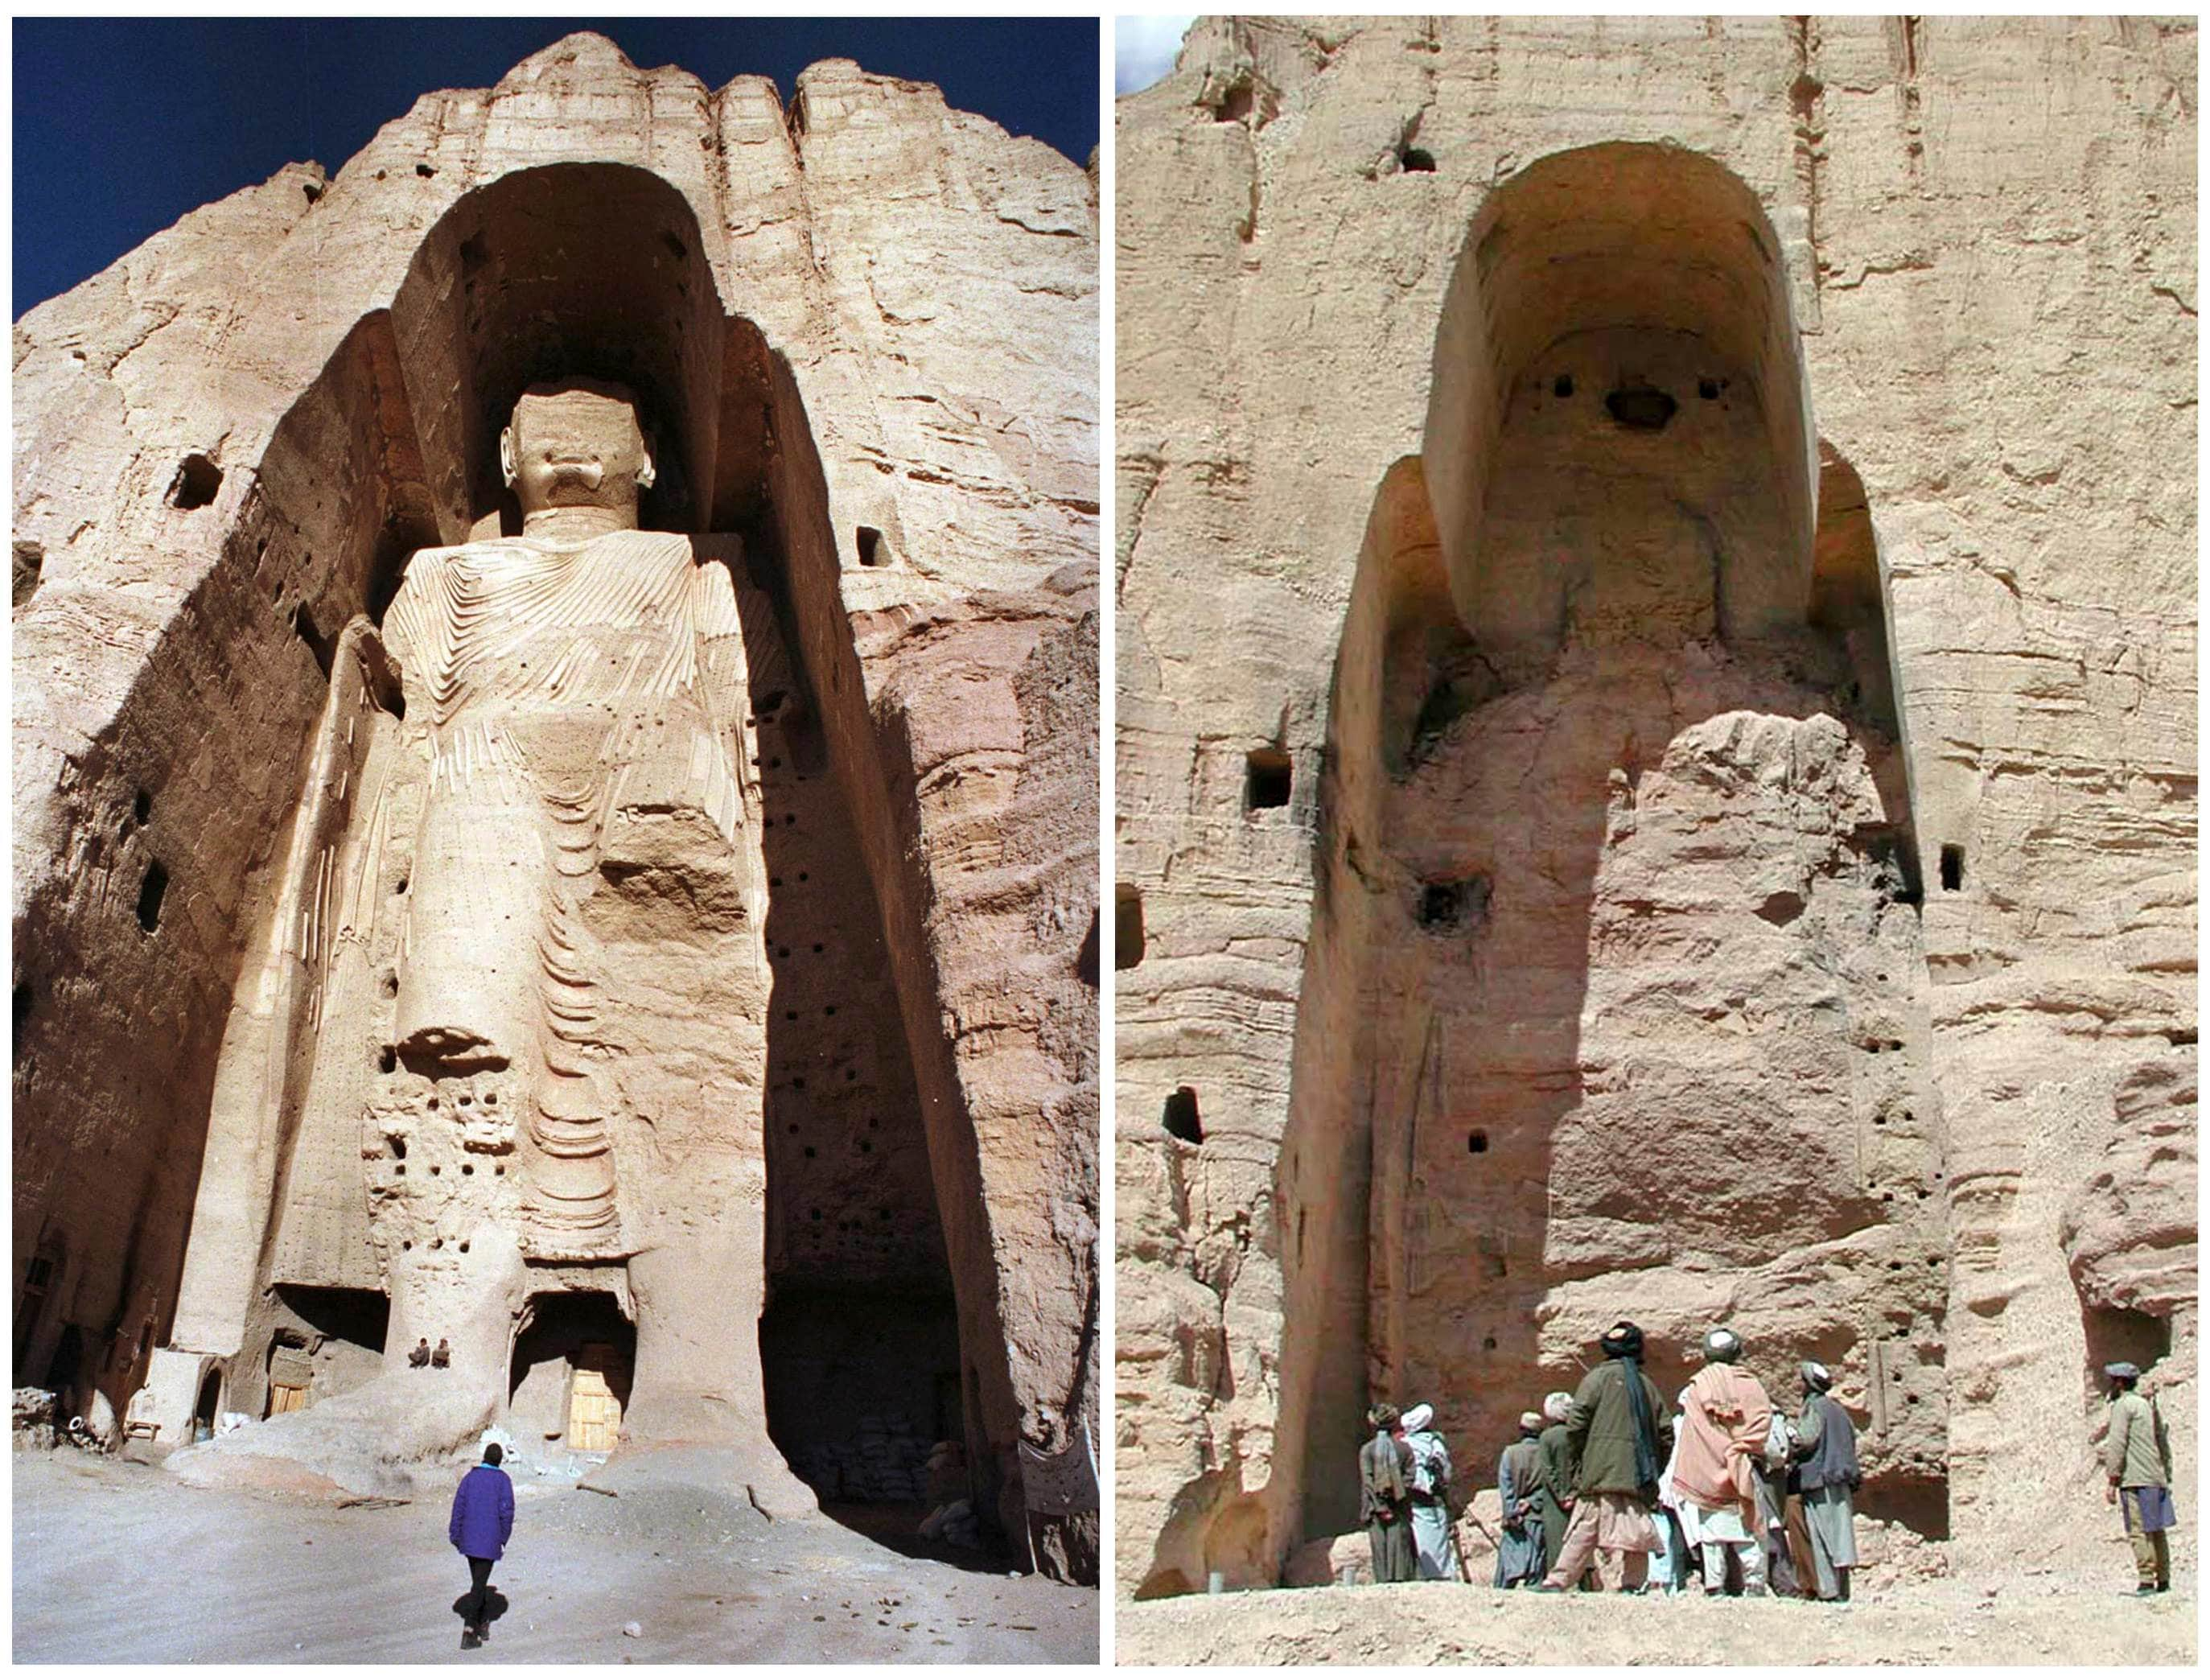 the destruction of statue of Buddah in Afghanistan